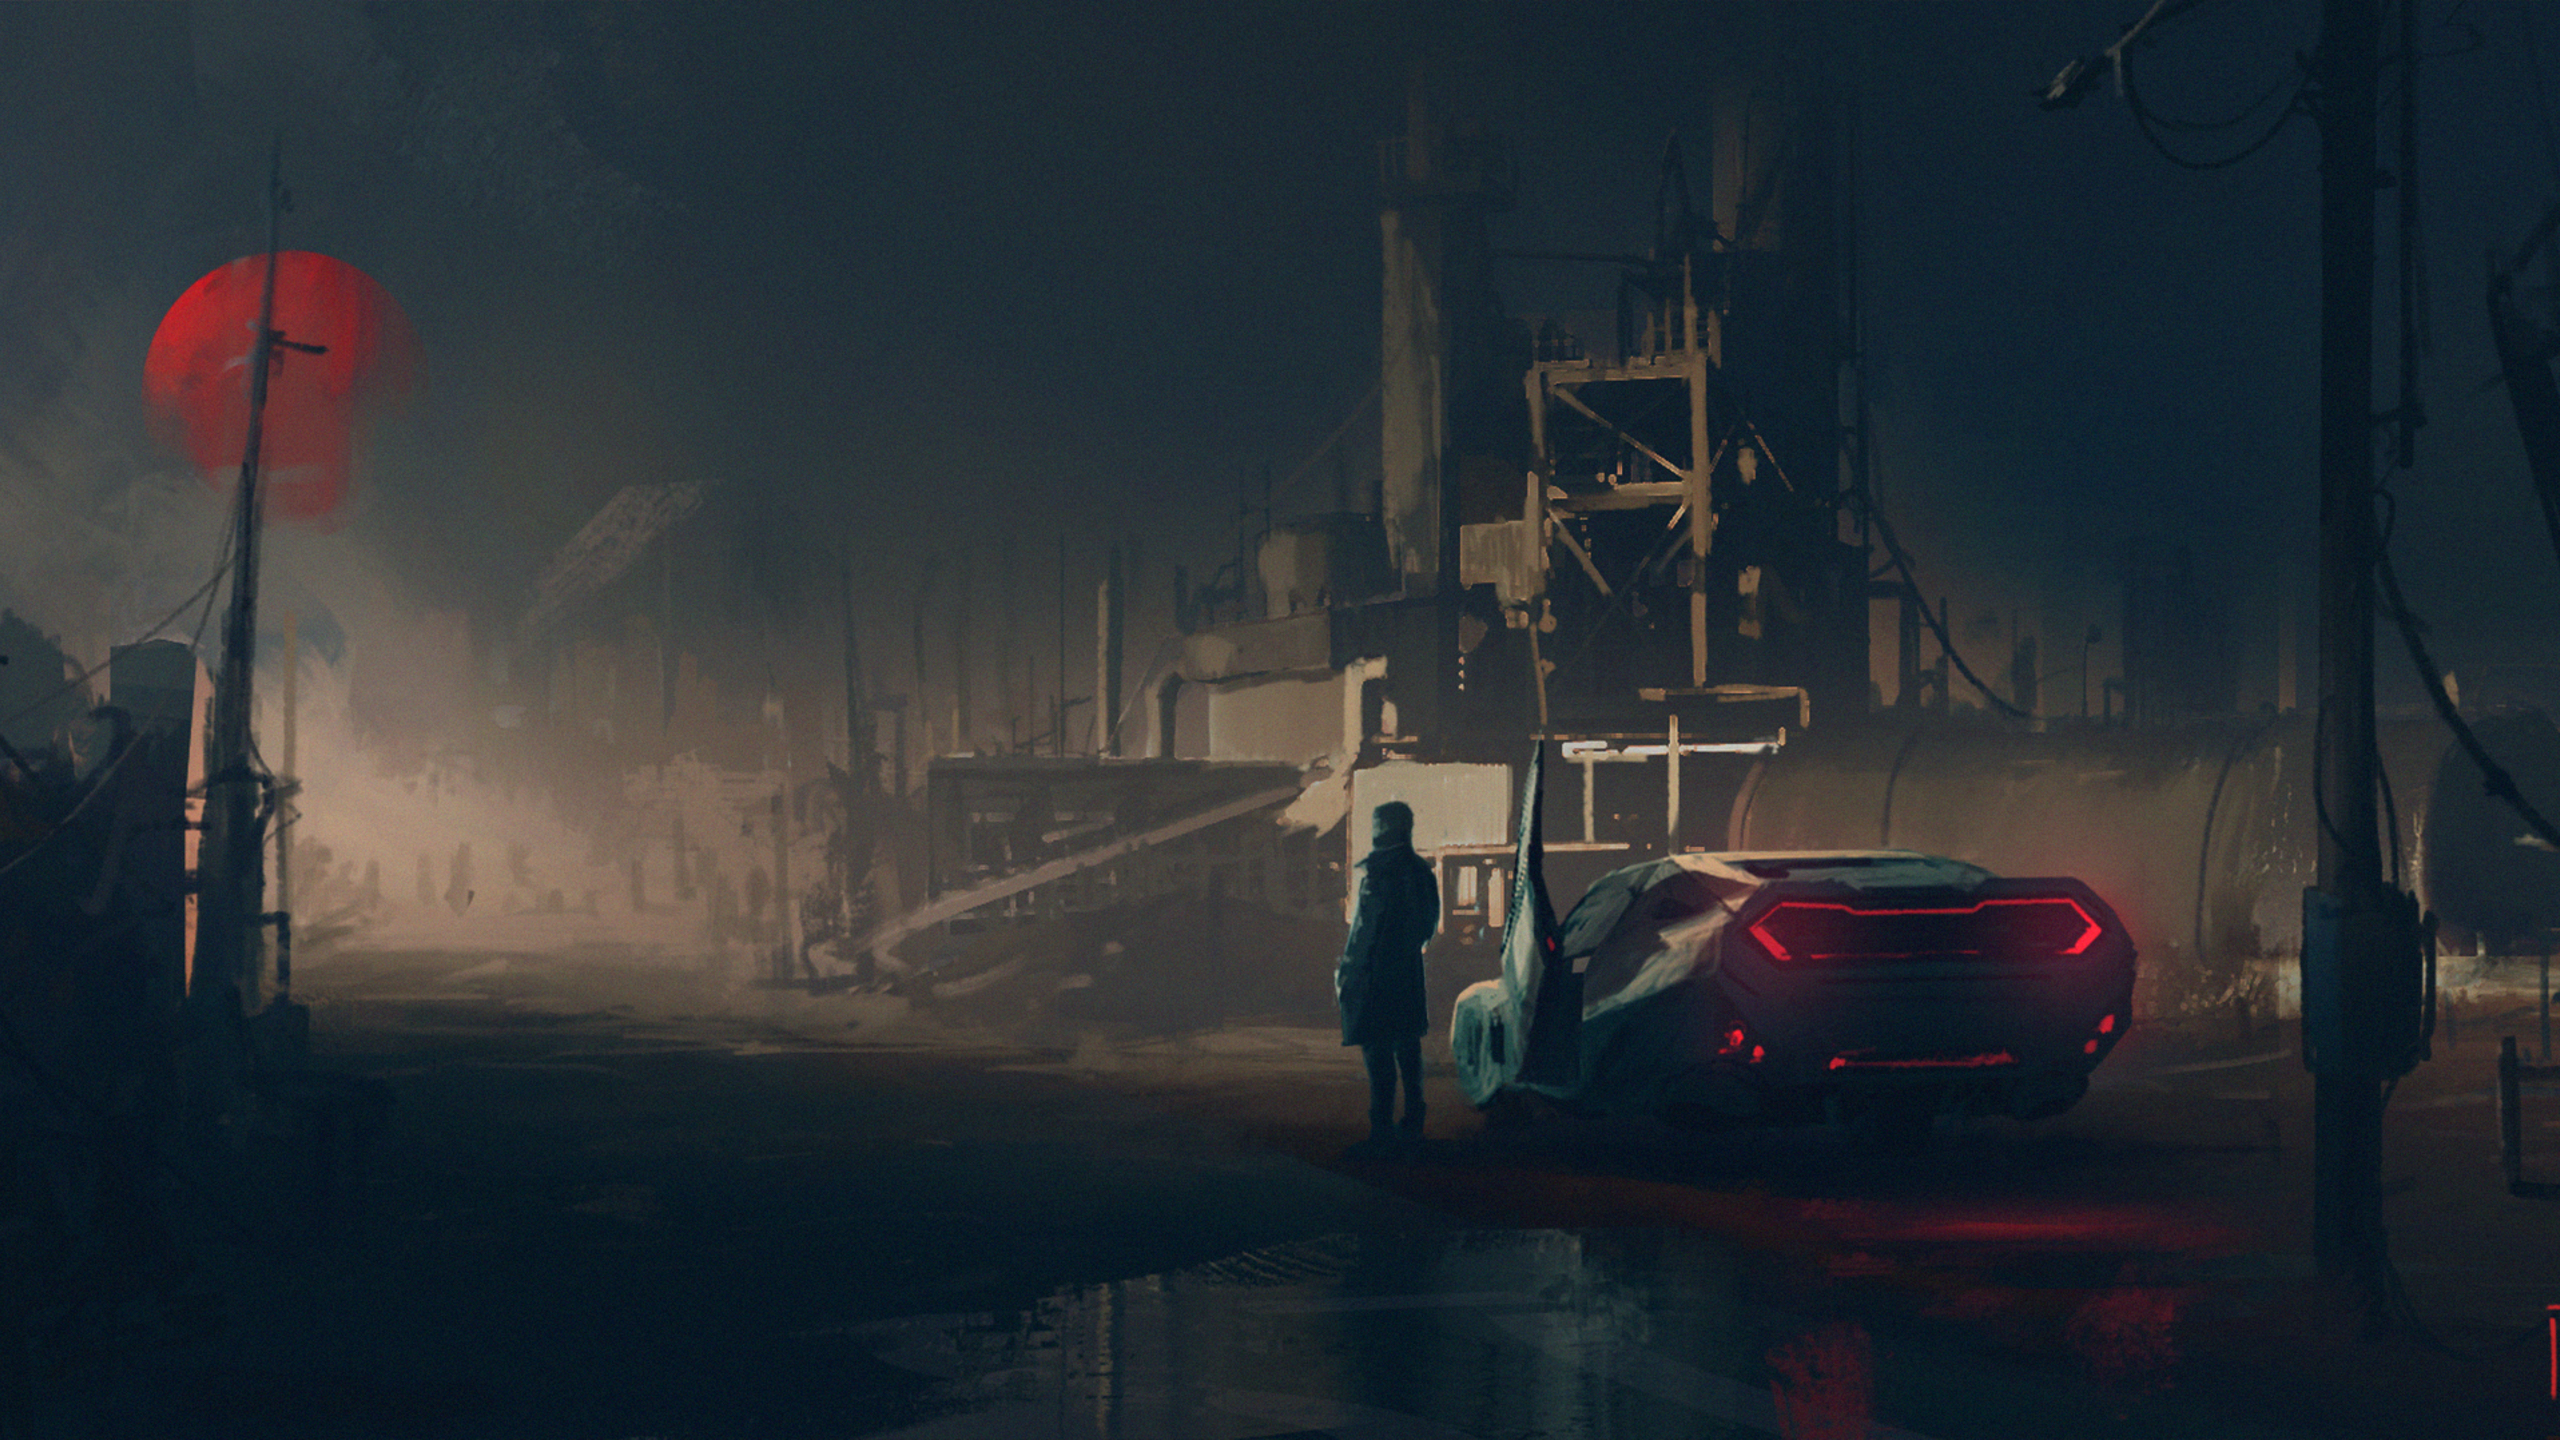 2560x1440 Blade Runner 2049 Fan Art 1440P Resolution HD 4k